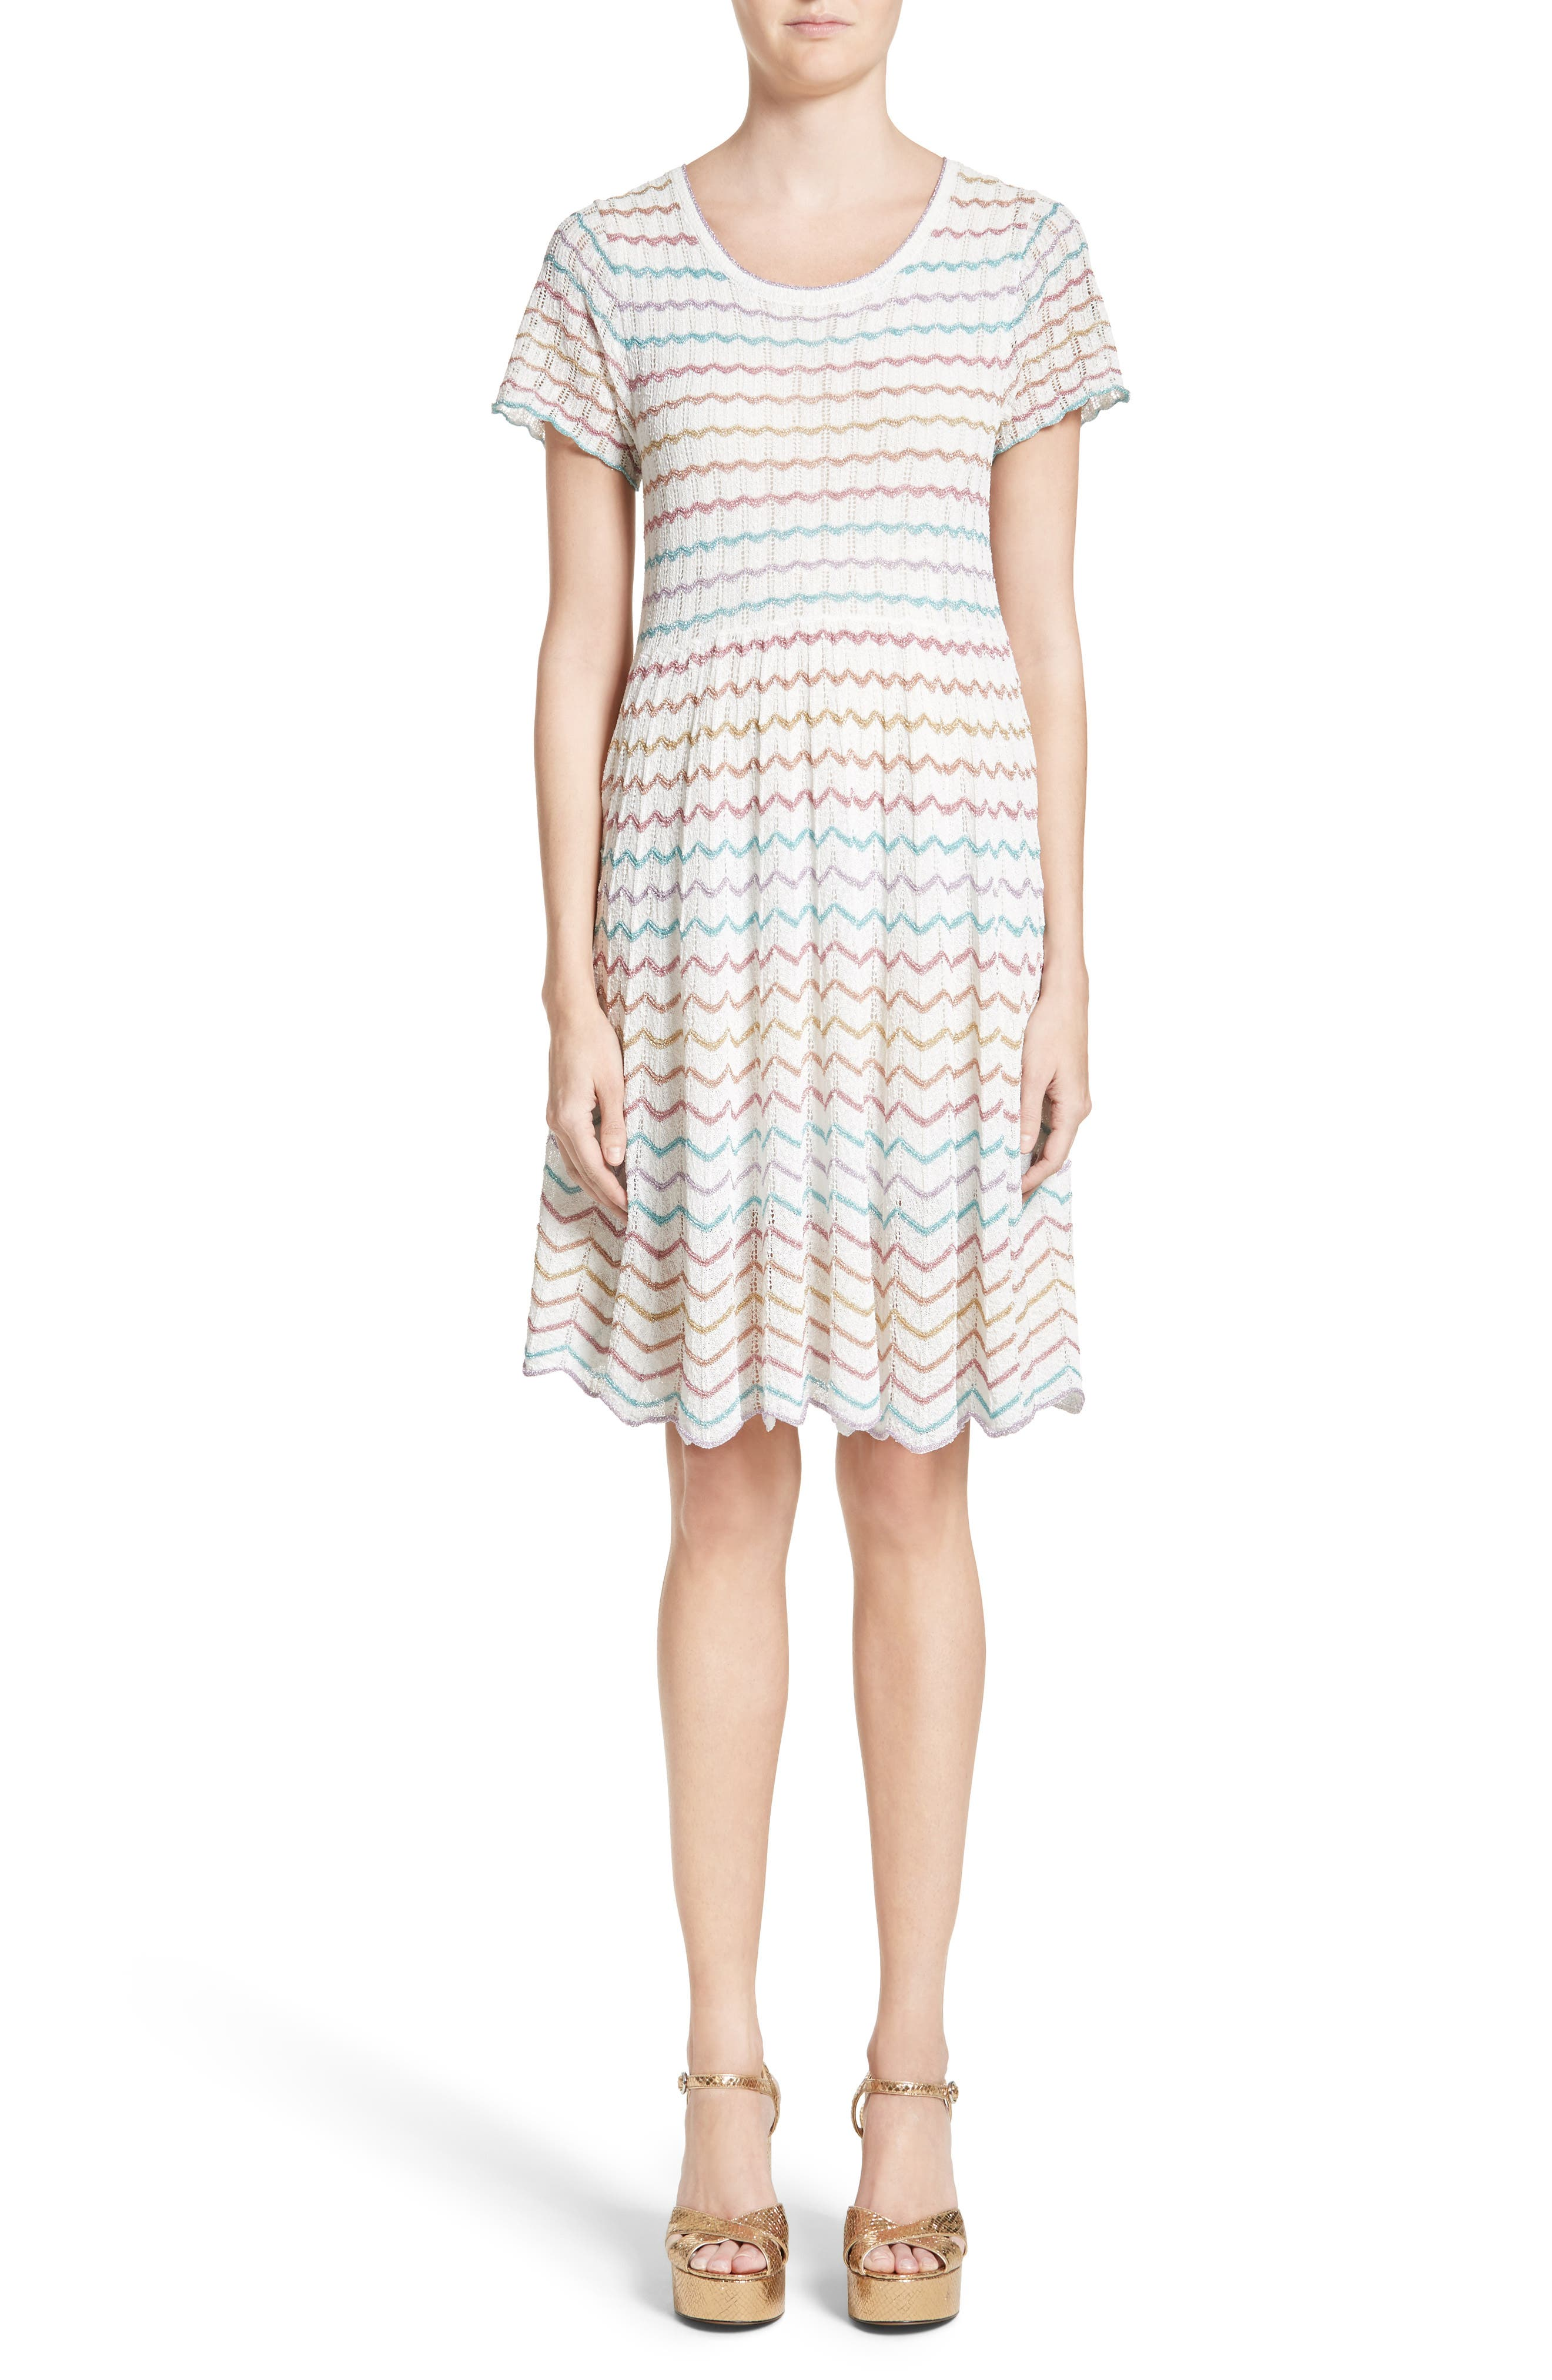 Alternate Image 1 Selected - MARC JACOBS Knit Babydoll Dress